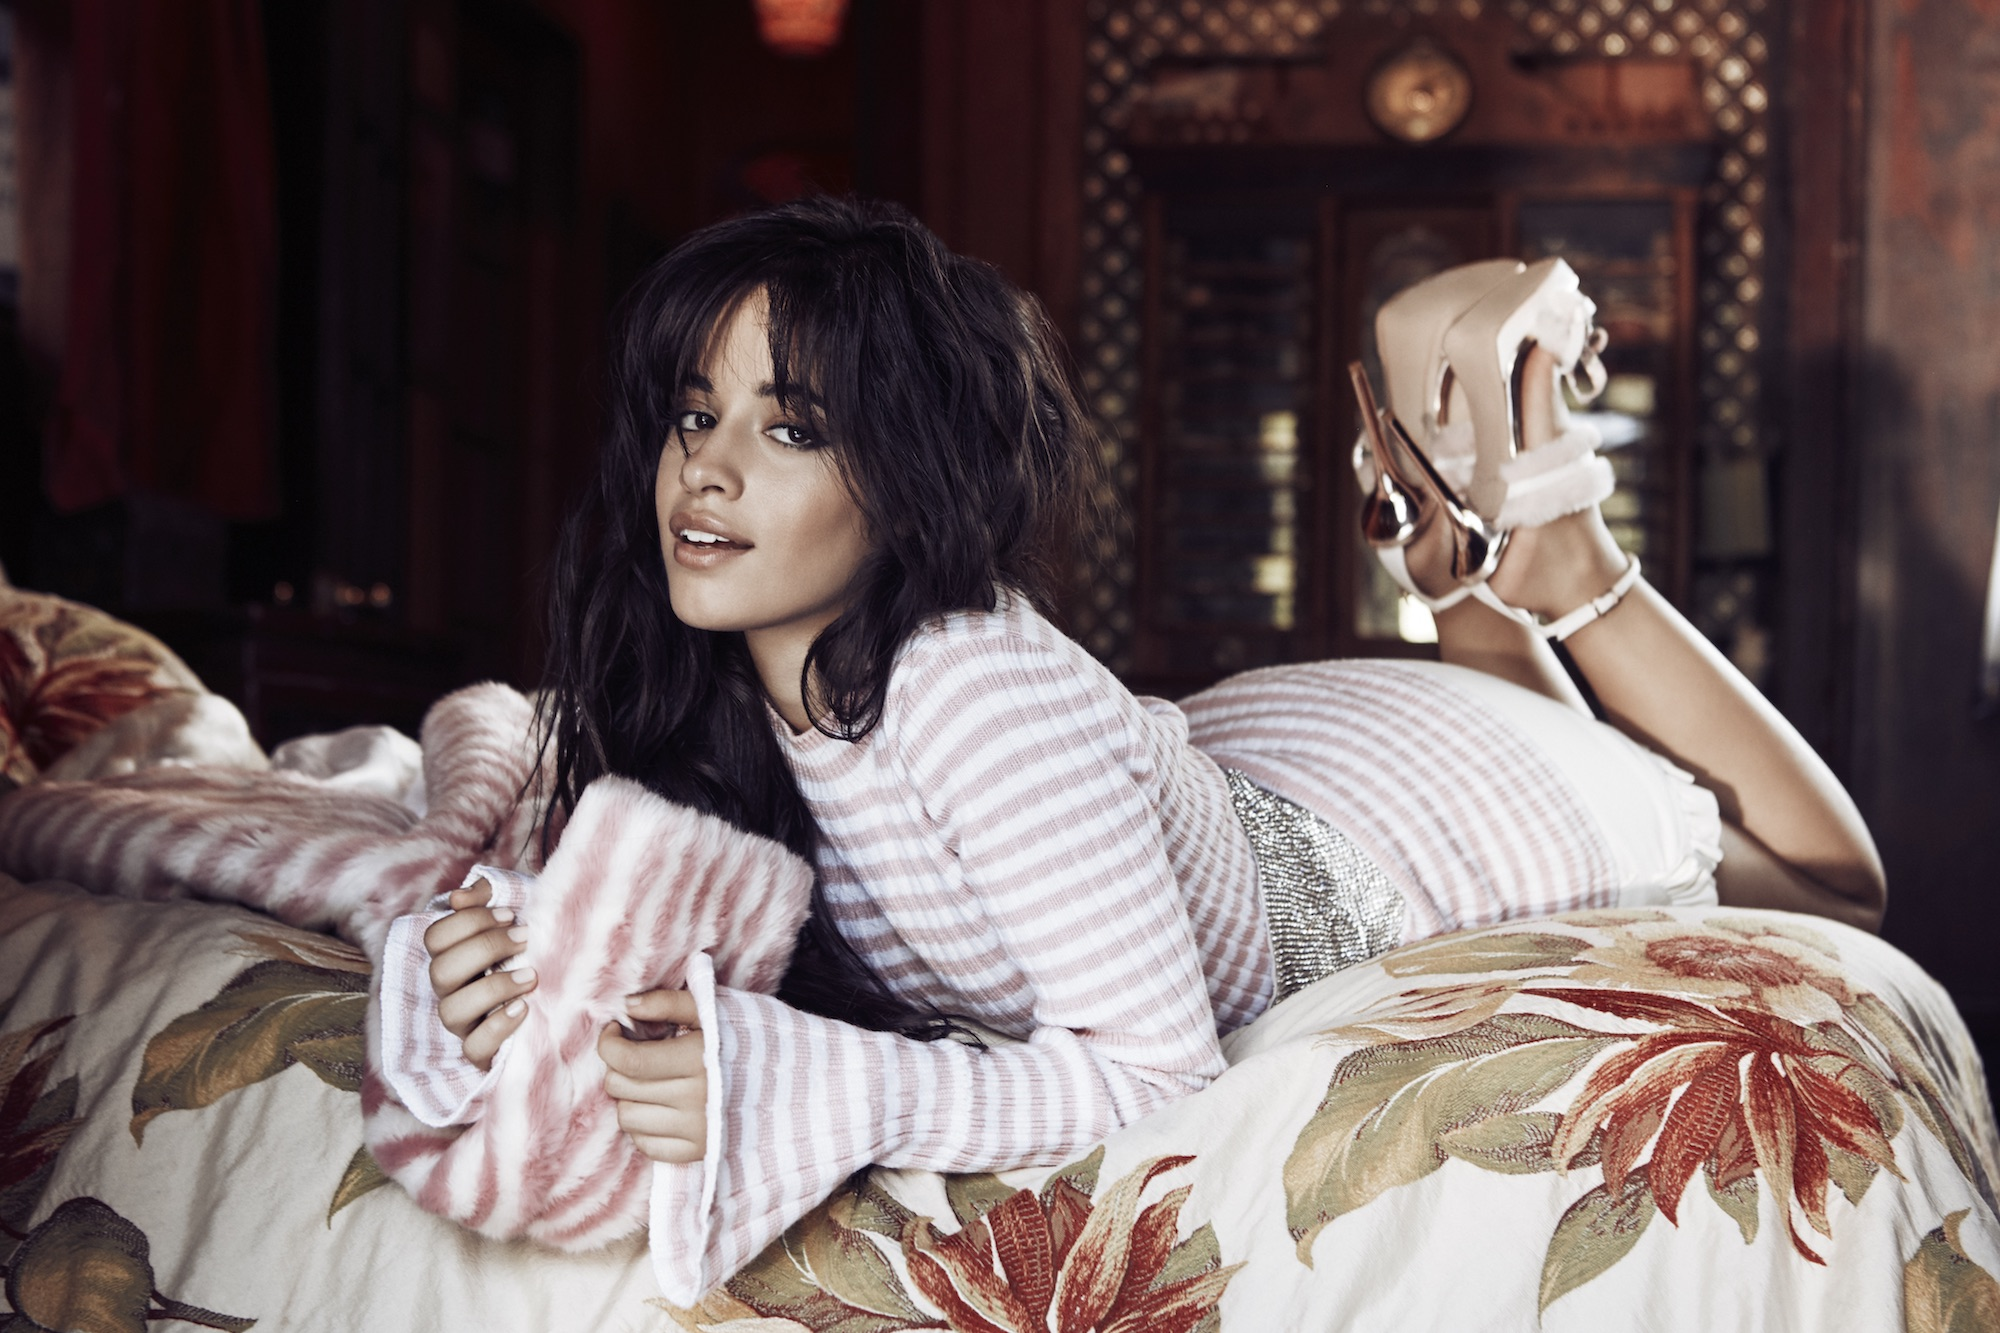 Rollacoaster star Camila Cabello will play Cinderella